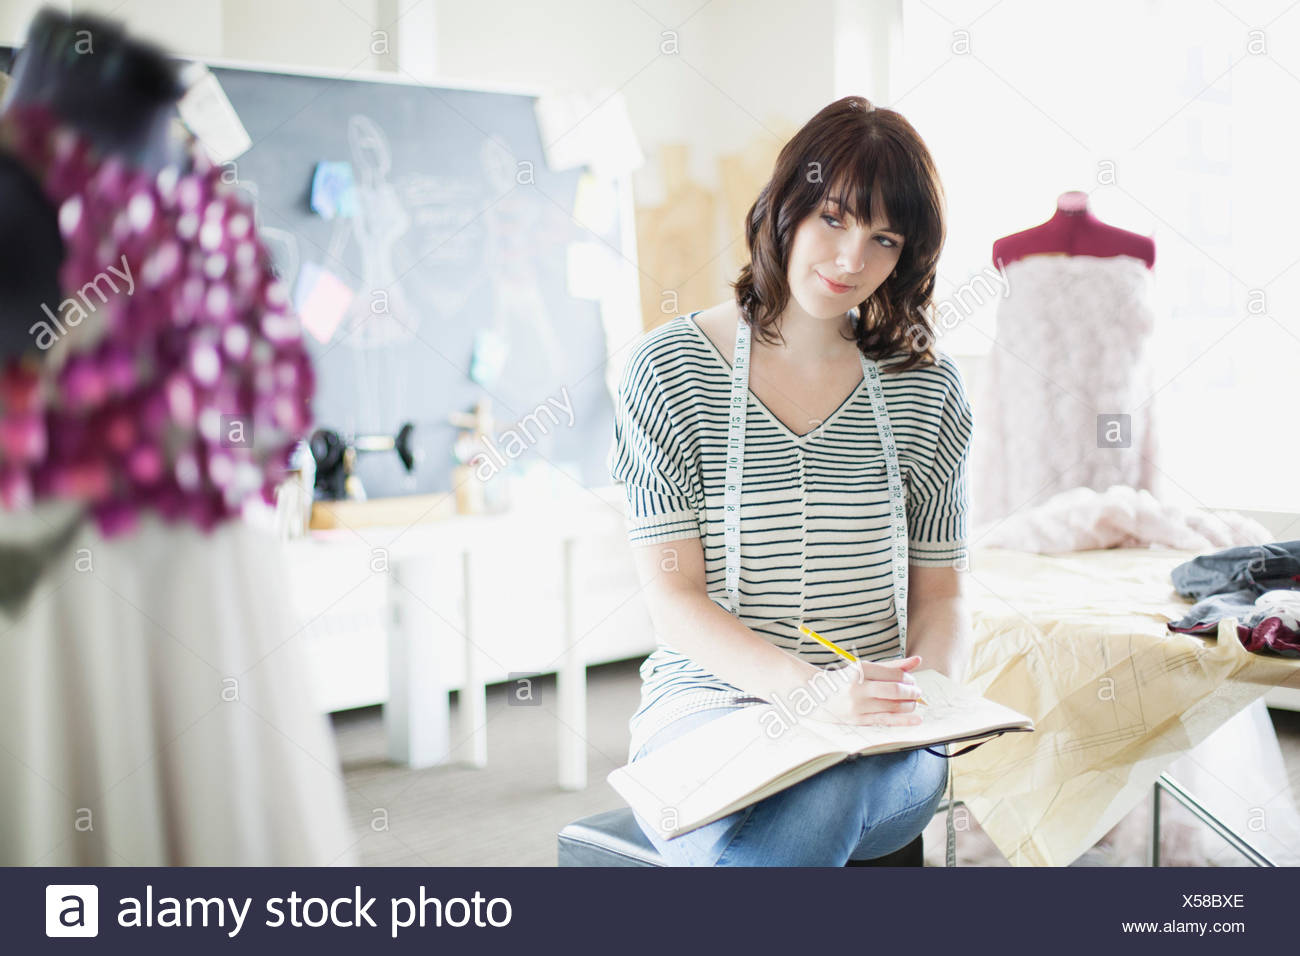 pretty, clothing designer doing some sketches - Stock Image